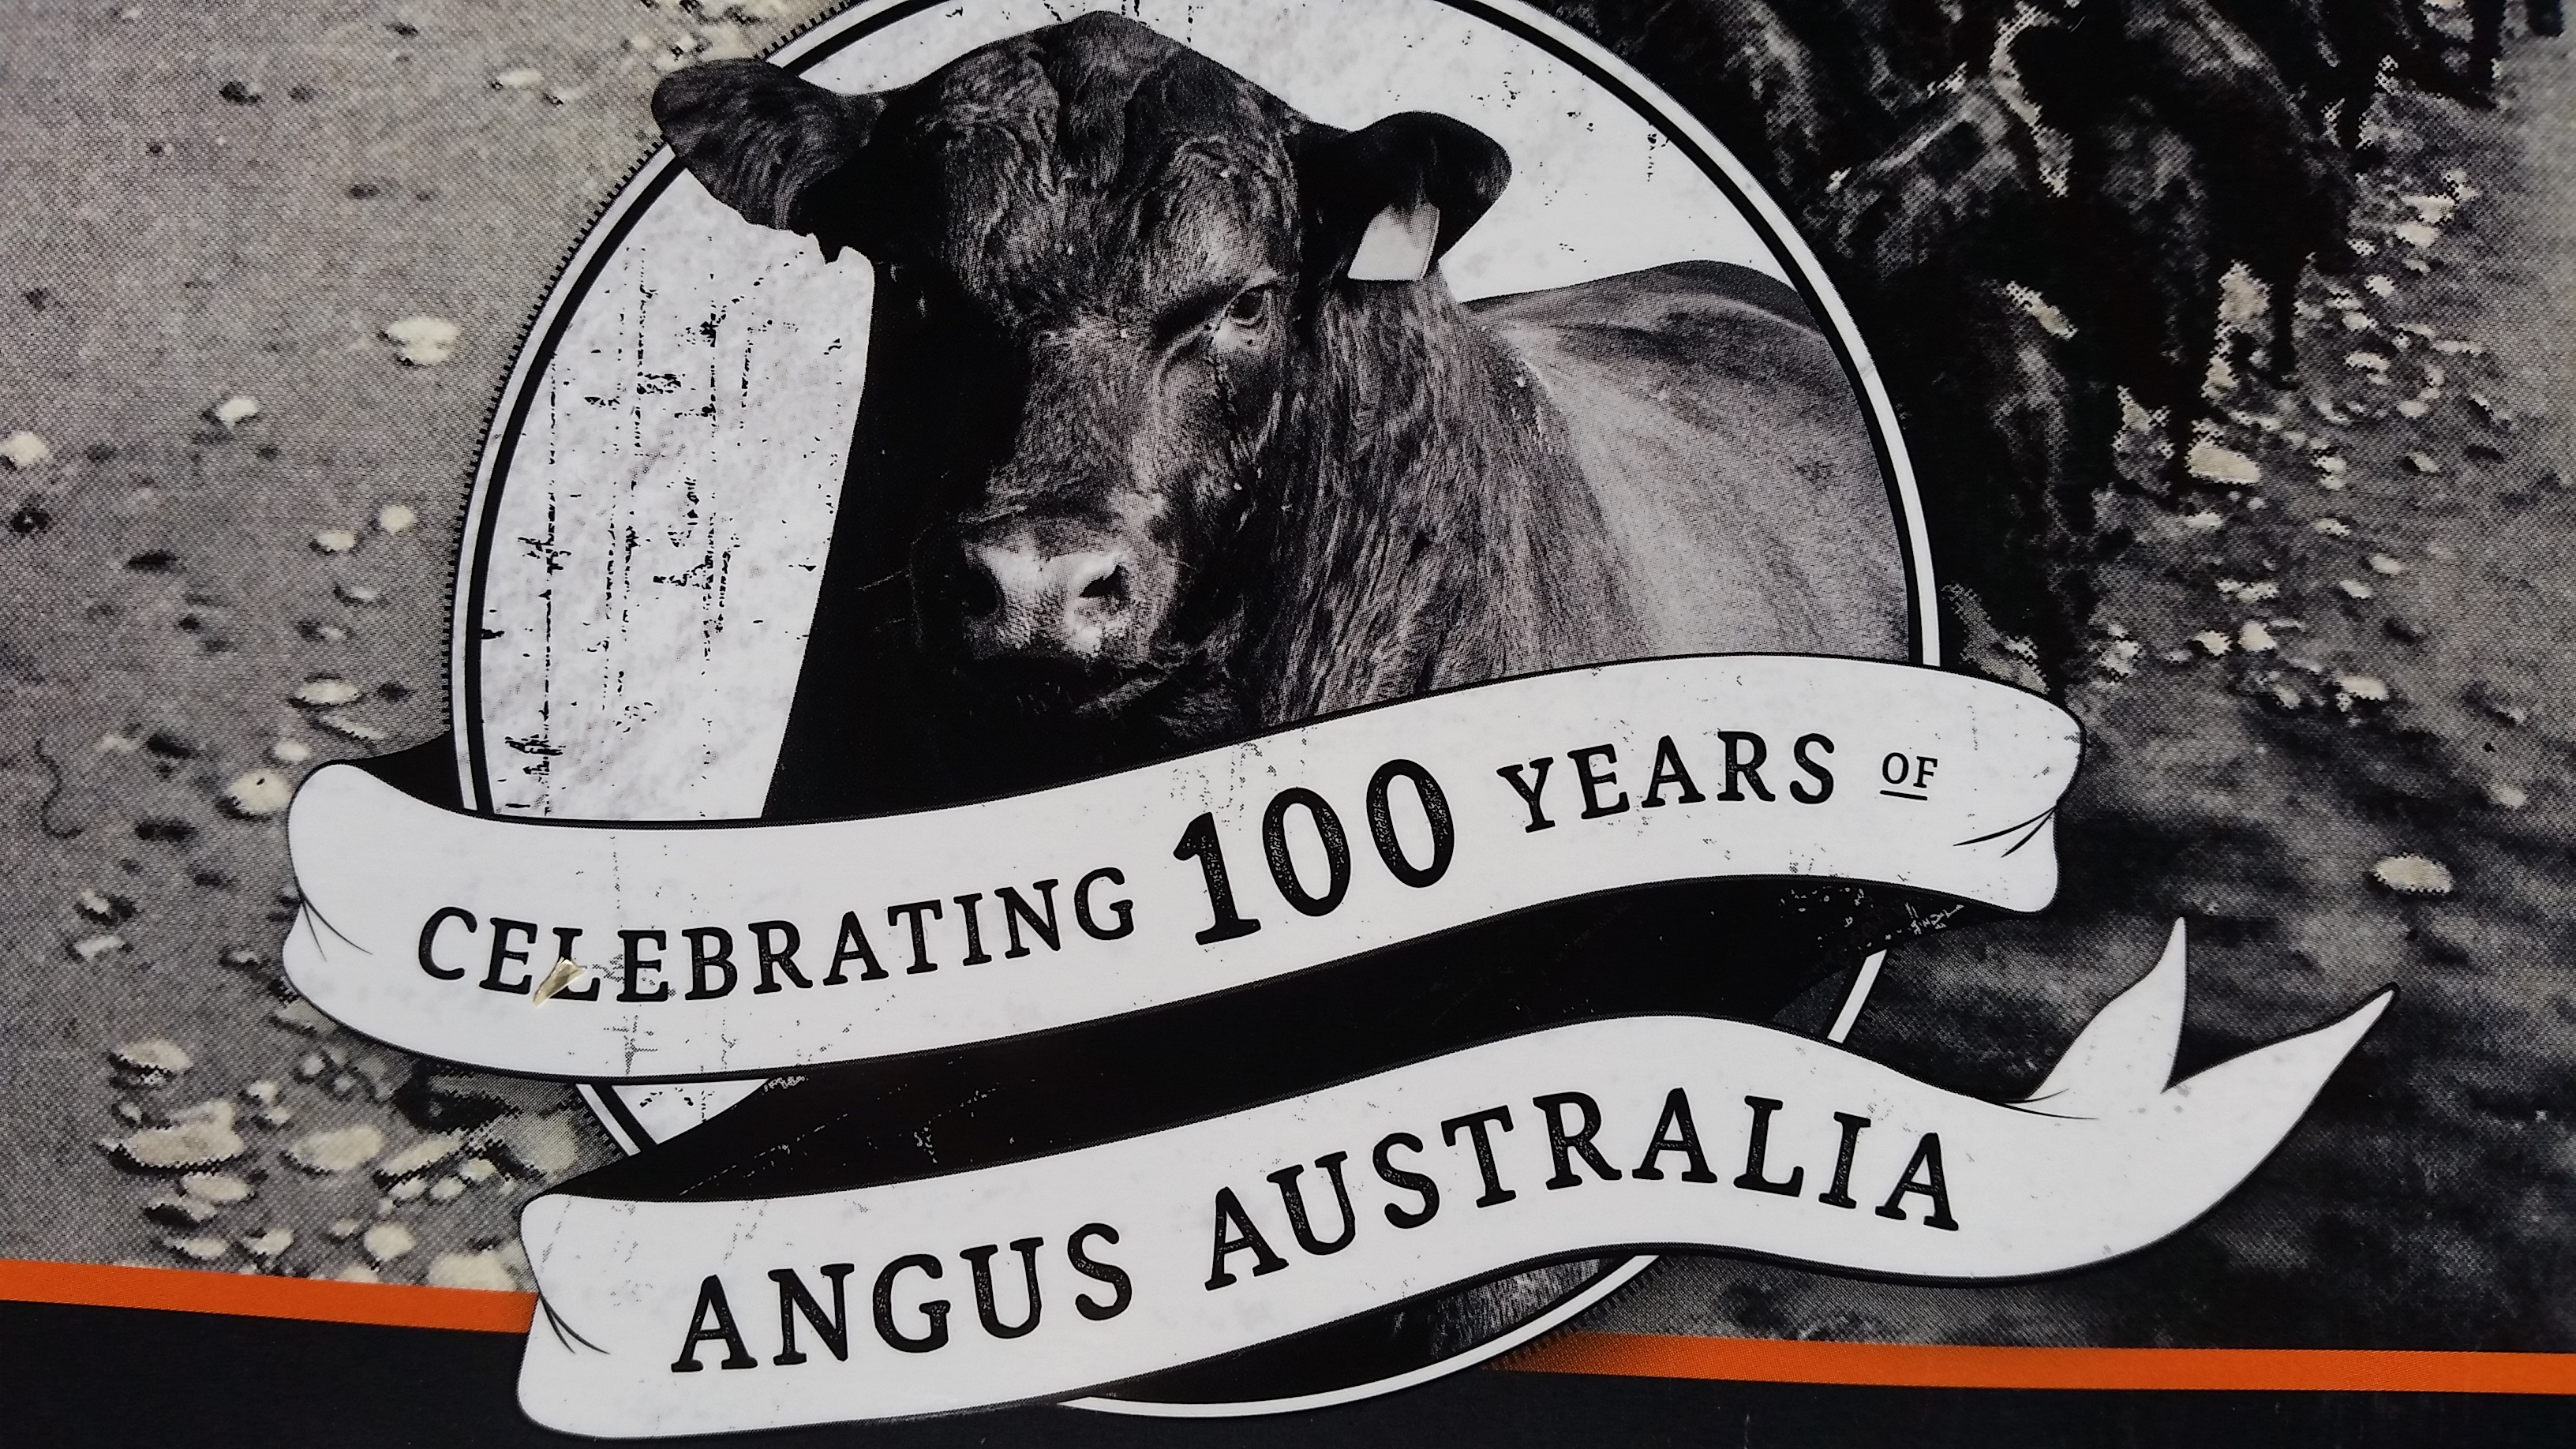 Bring on another 100 Years of Angus Cattle in Australia!